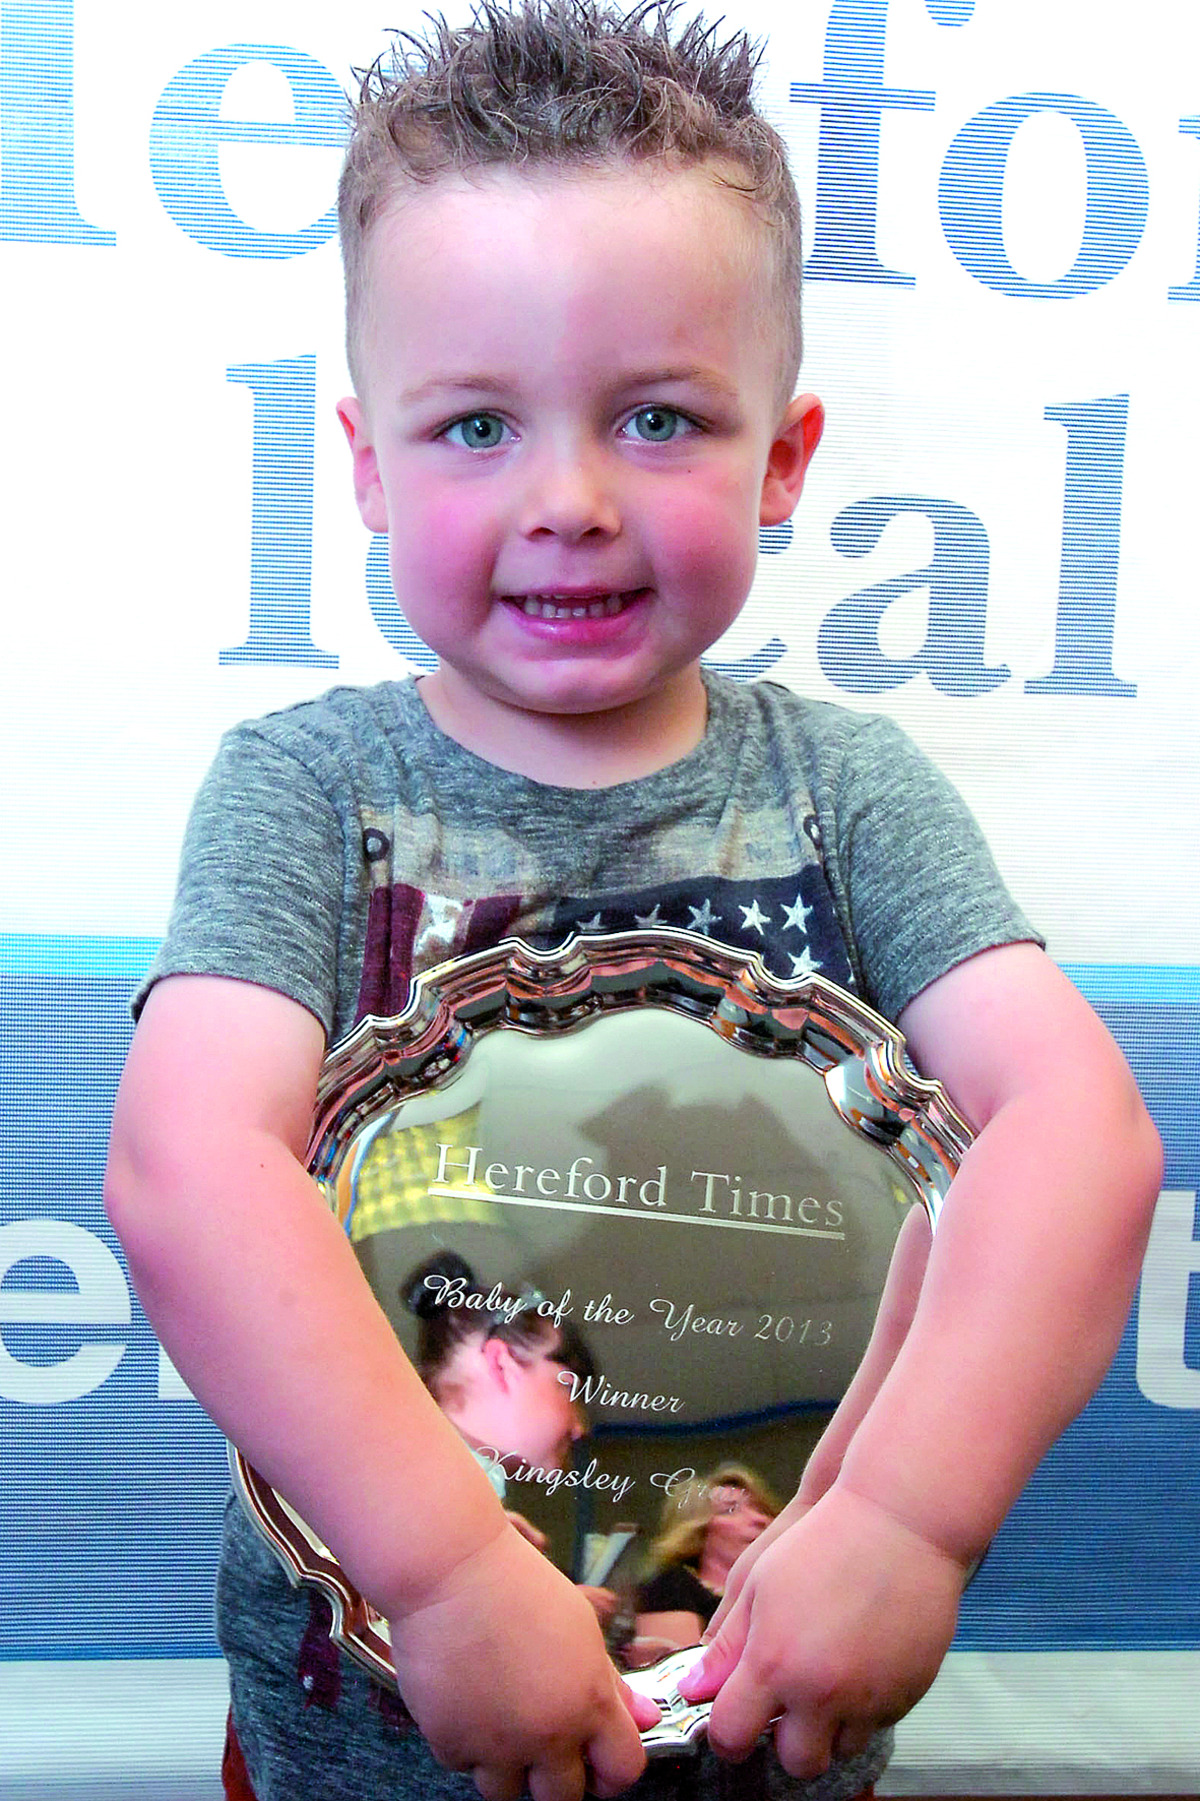 Oh baby - I'm a winner! Little Kingsley crowned baby of the year